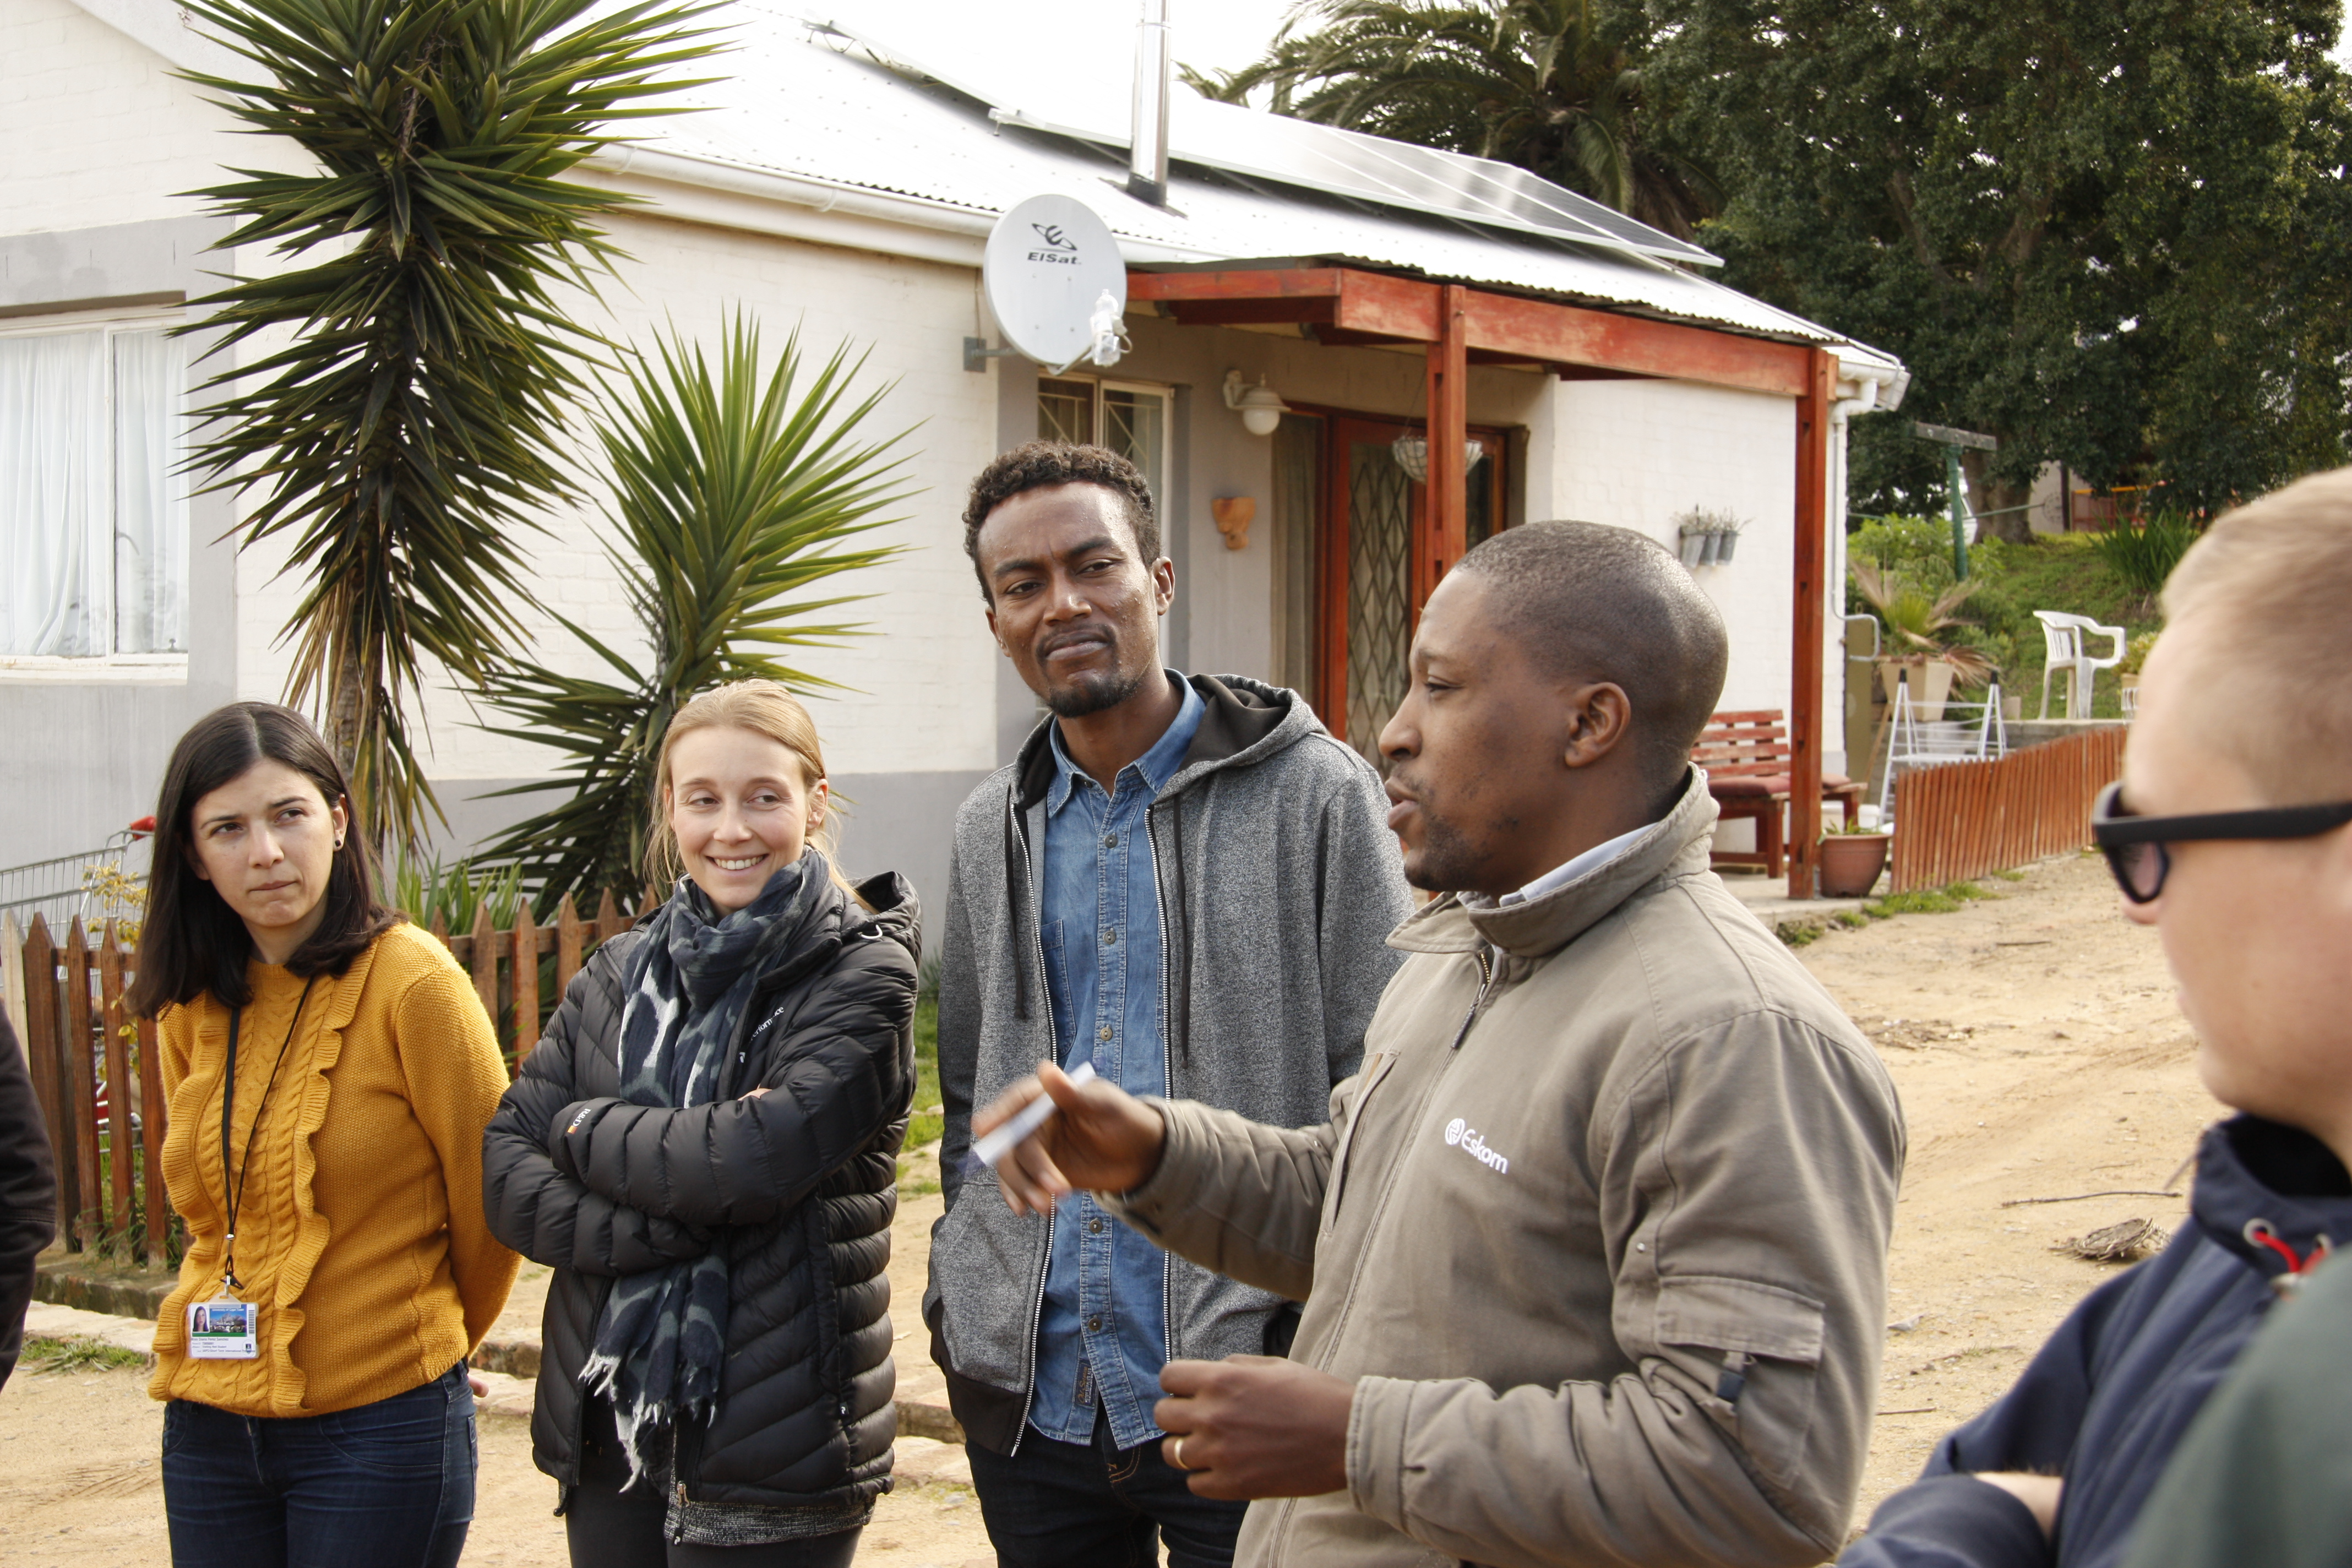 Excursion to the Lynedoch Eco Village outside of Stellenbosch. In the picture a empolyee from Eskom, the South African electricity public utility, explains about microgrids. Photo credit: Energy Politics Group and ETH Global.